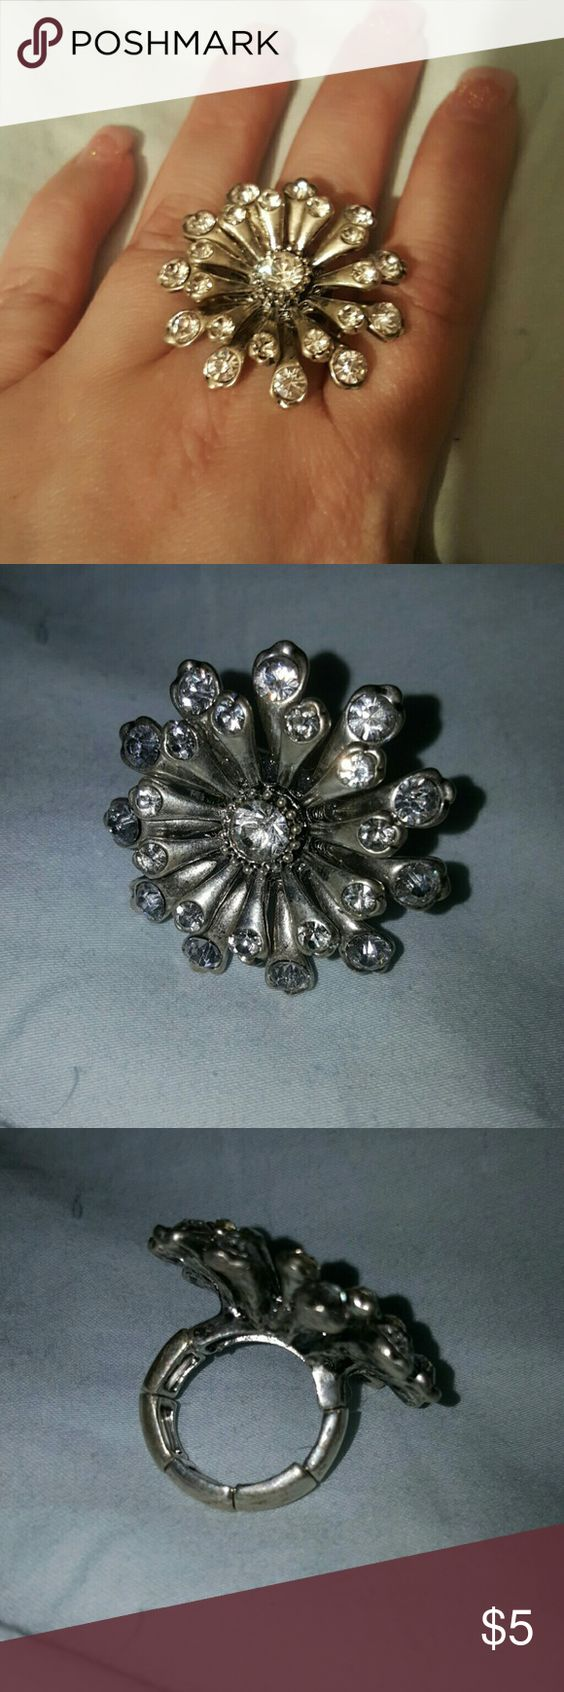 Sunburst Adjustable Ring Silver setting, clear crystals.  New with out tags Jewelry Rings